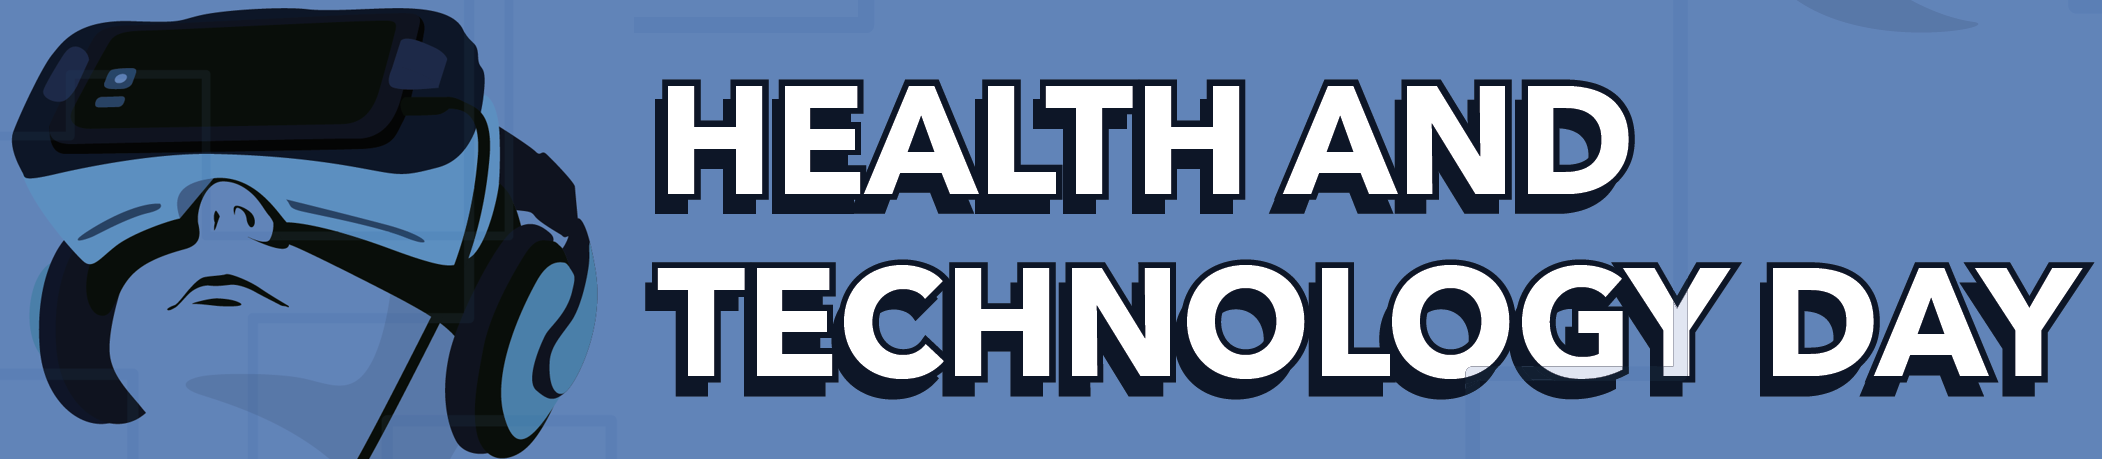 Health and Technology Day